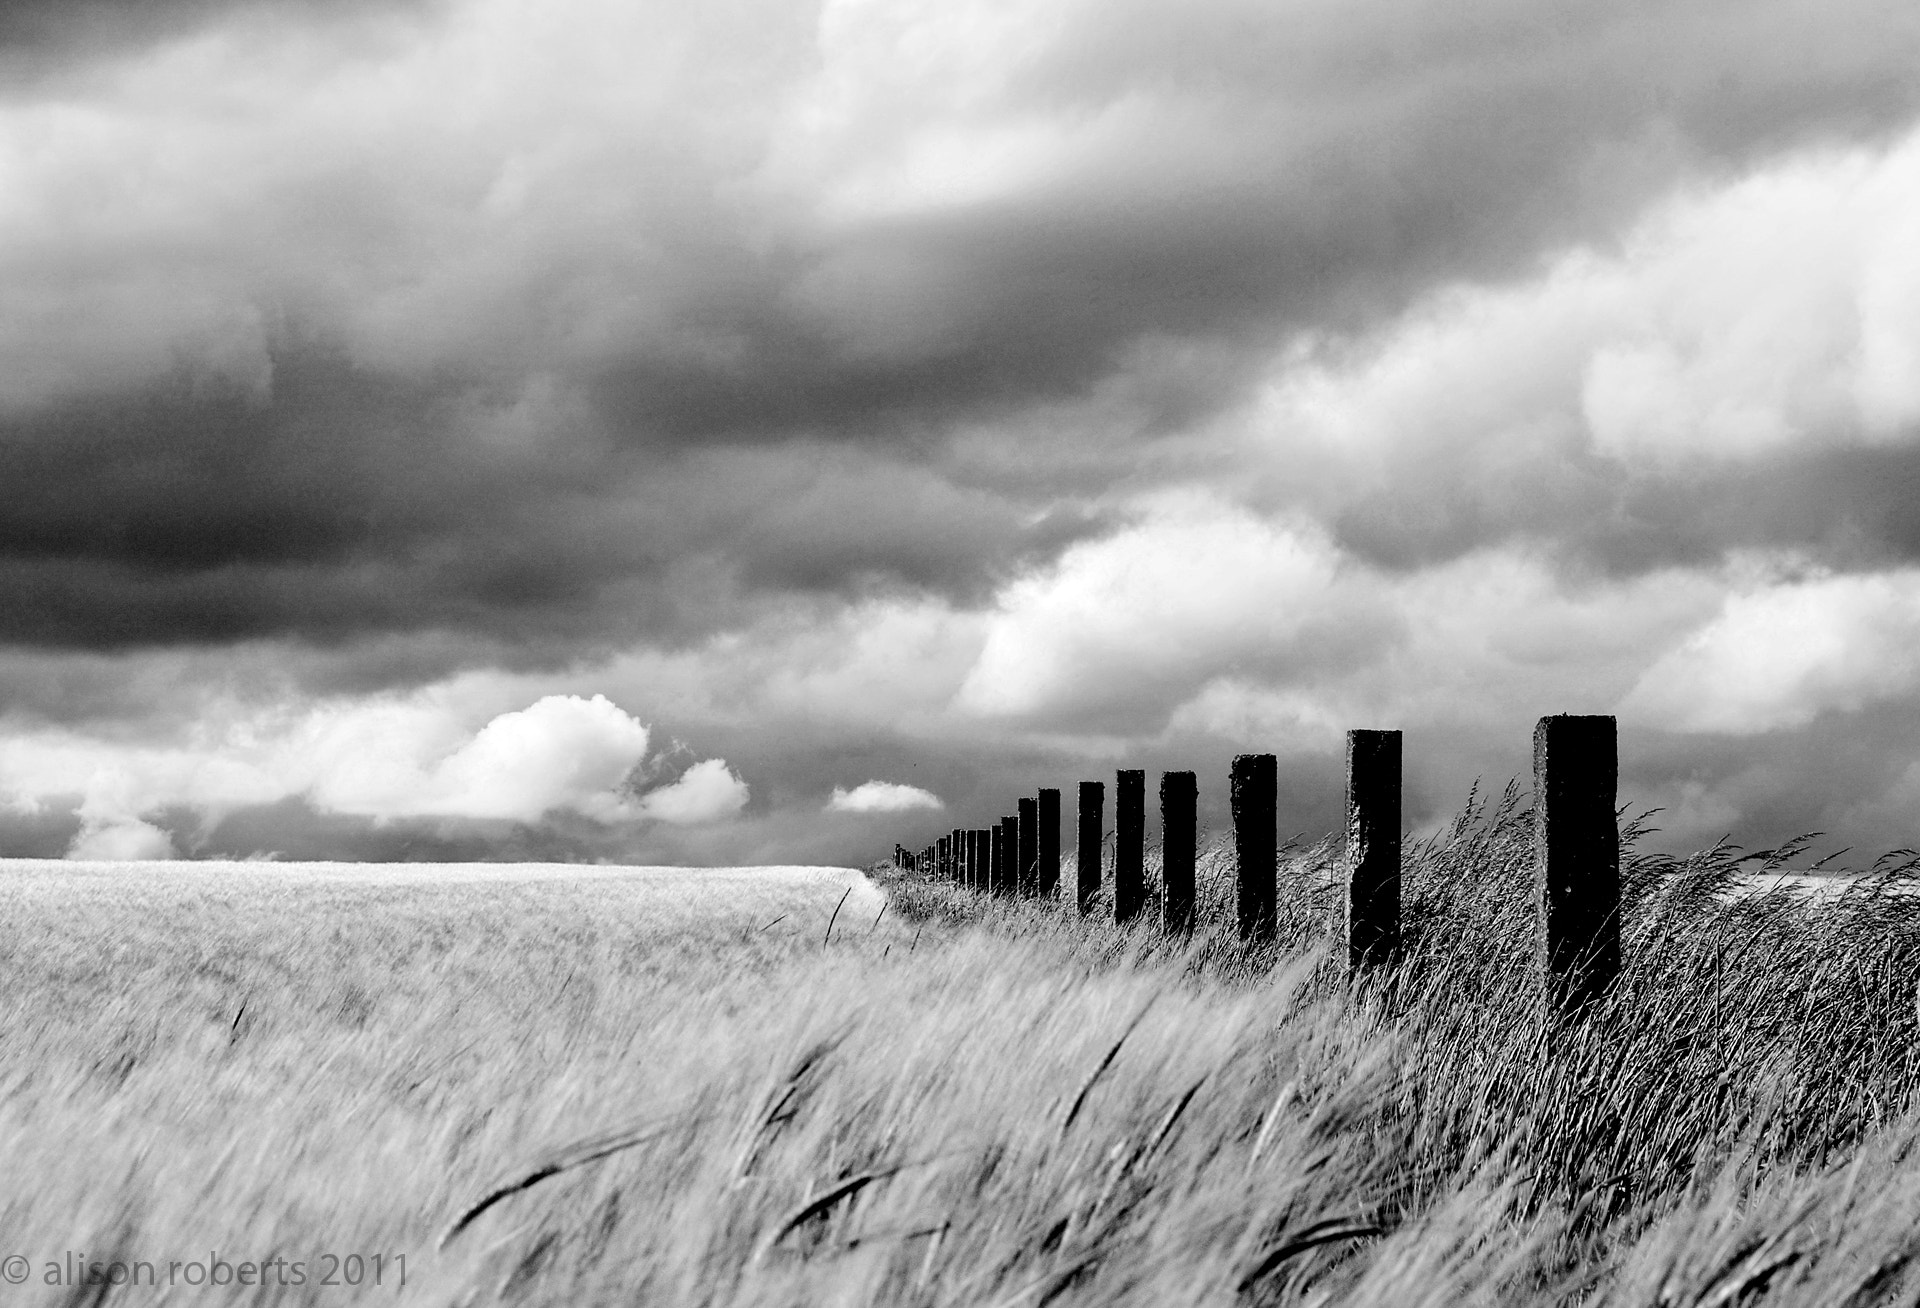 Photograph Infinitey by Alison Roberts on 500px